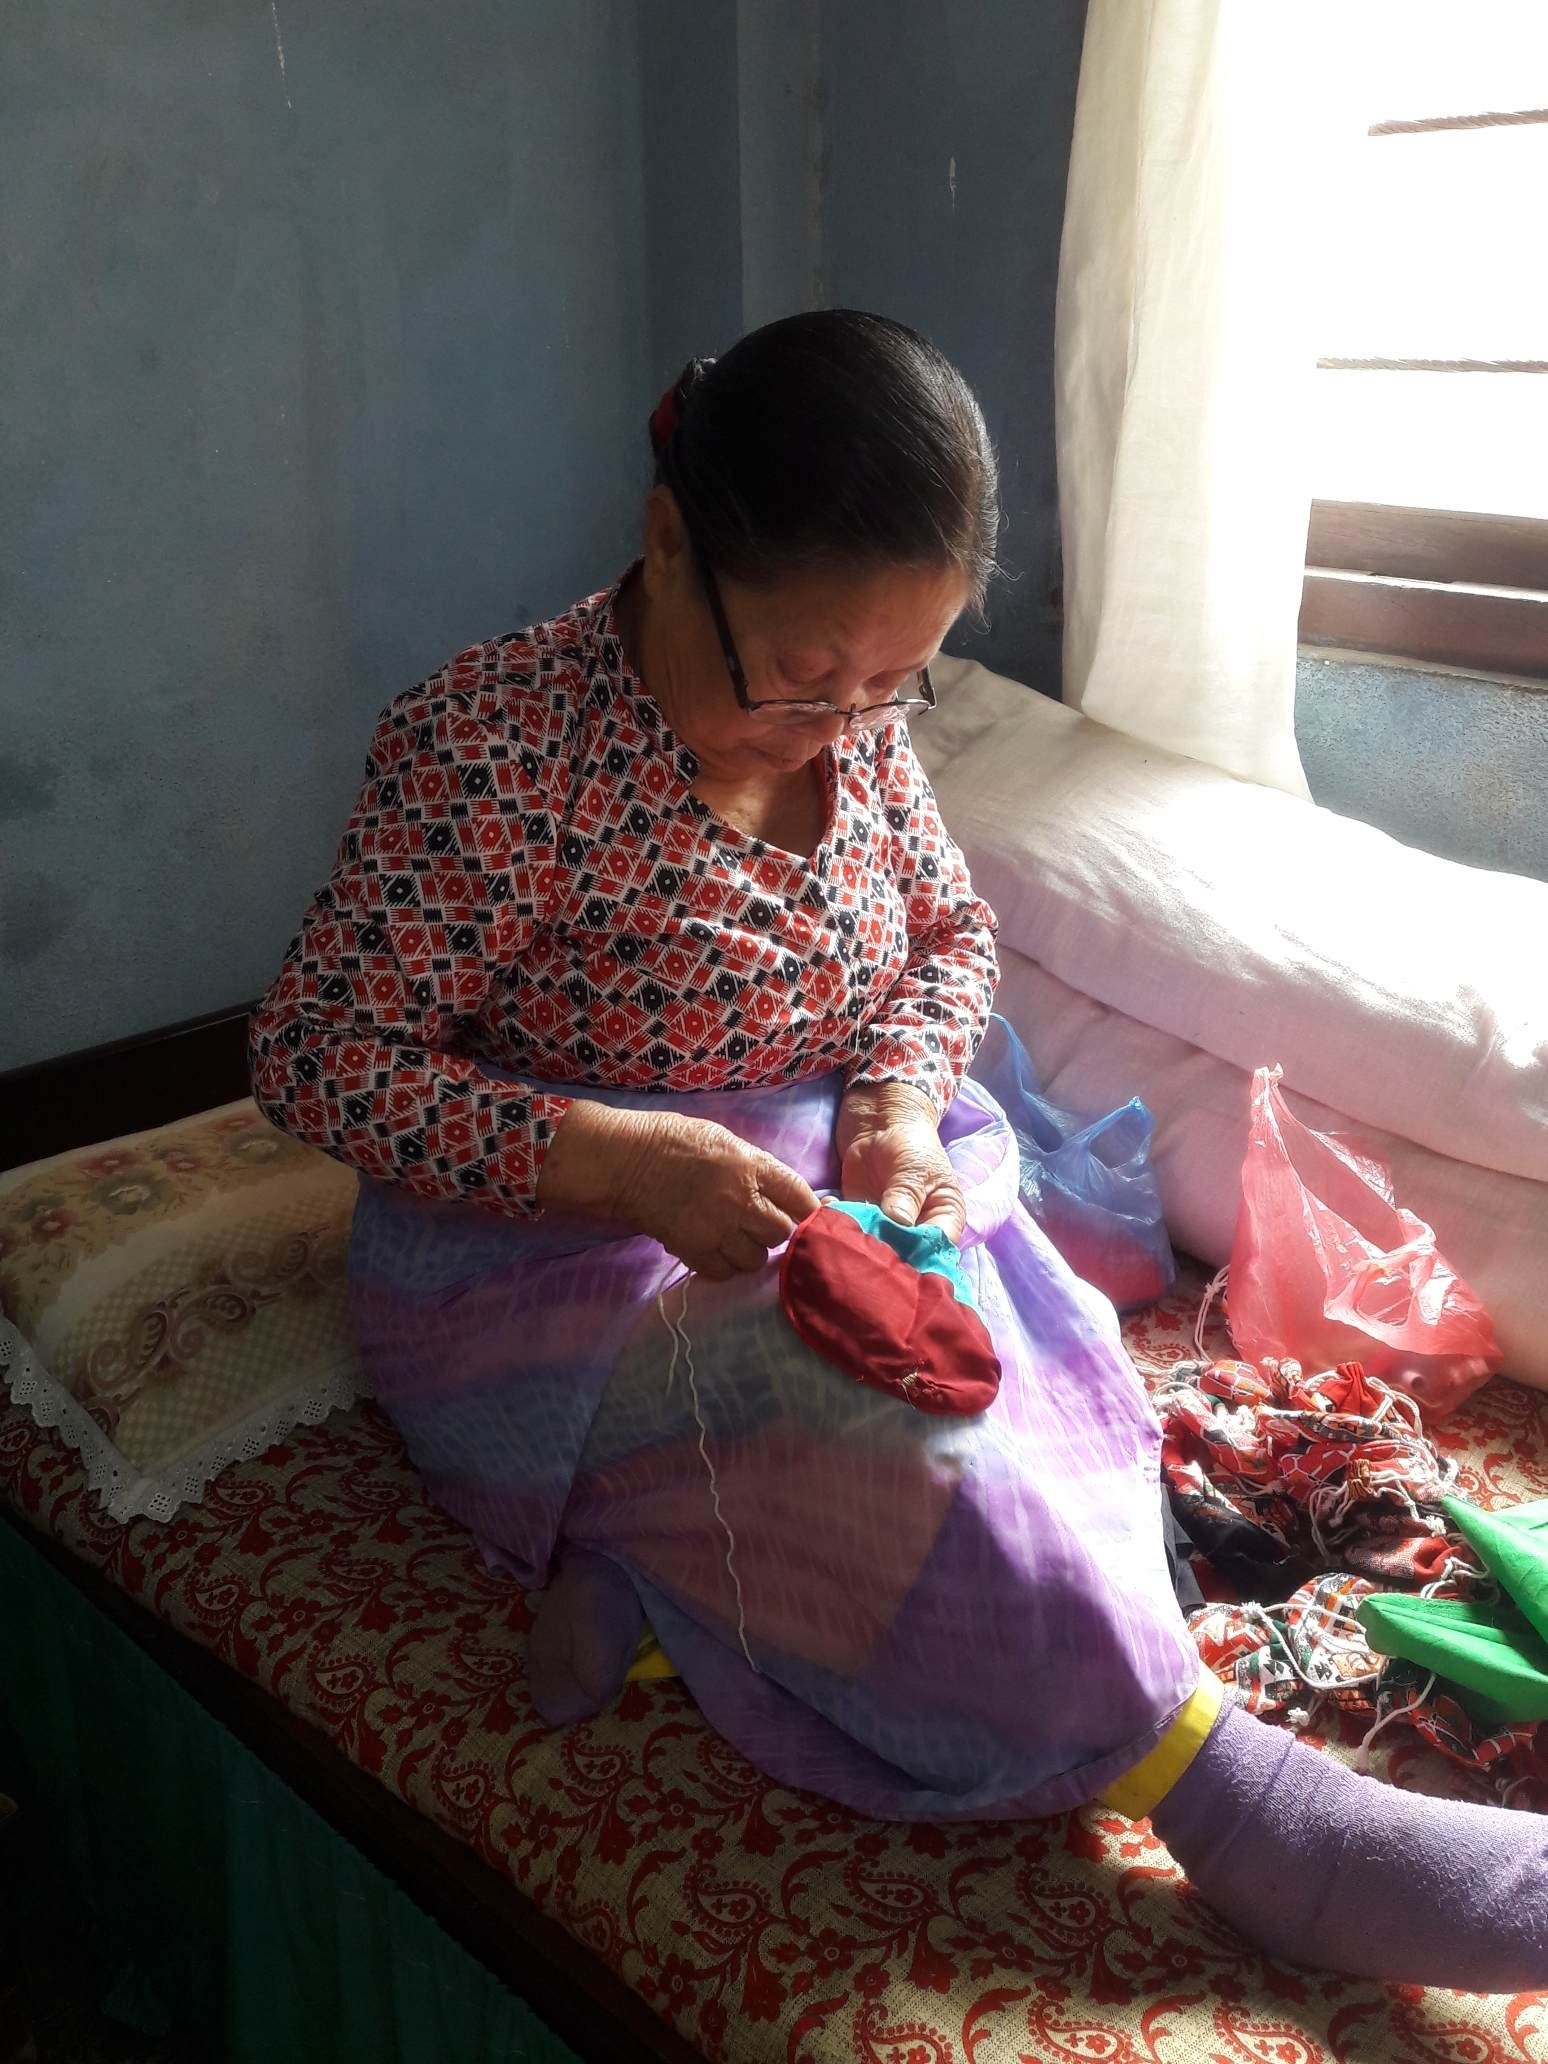 Handmade Bags from Nepal by the old woman